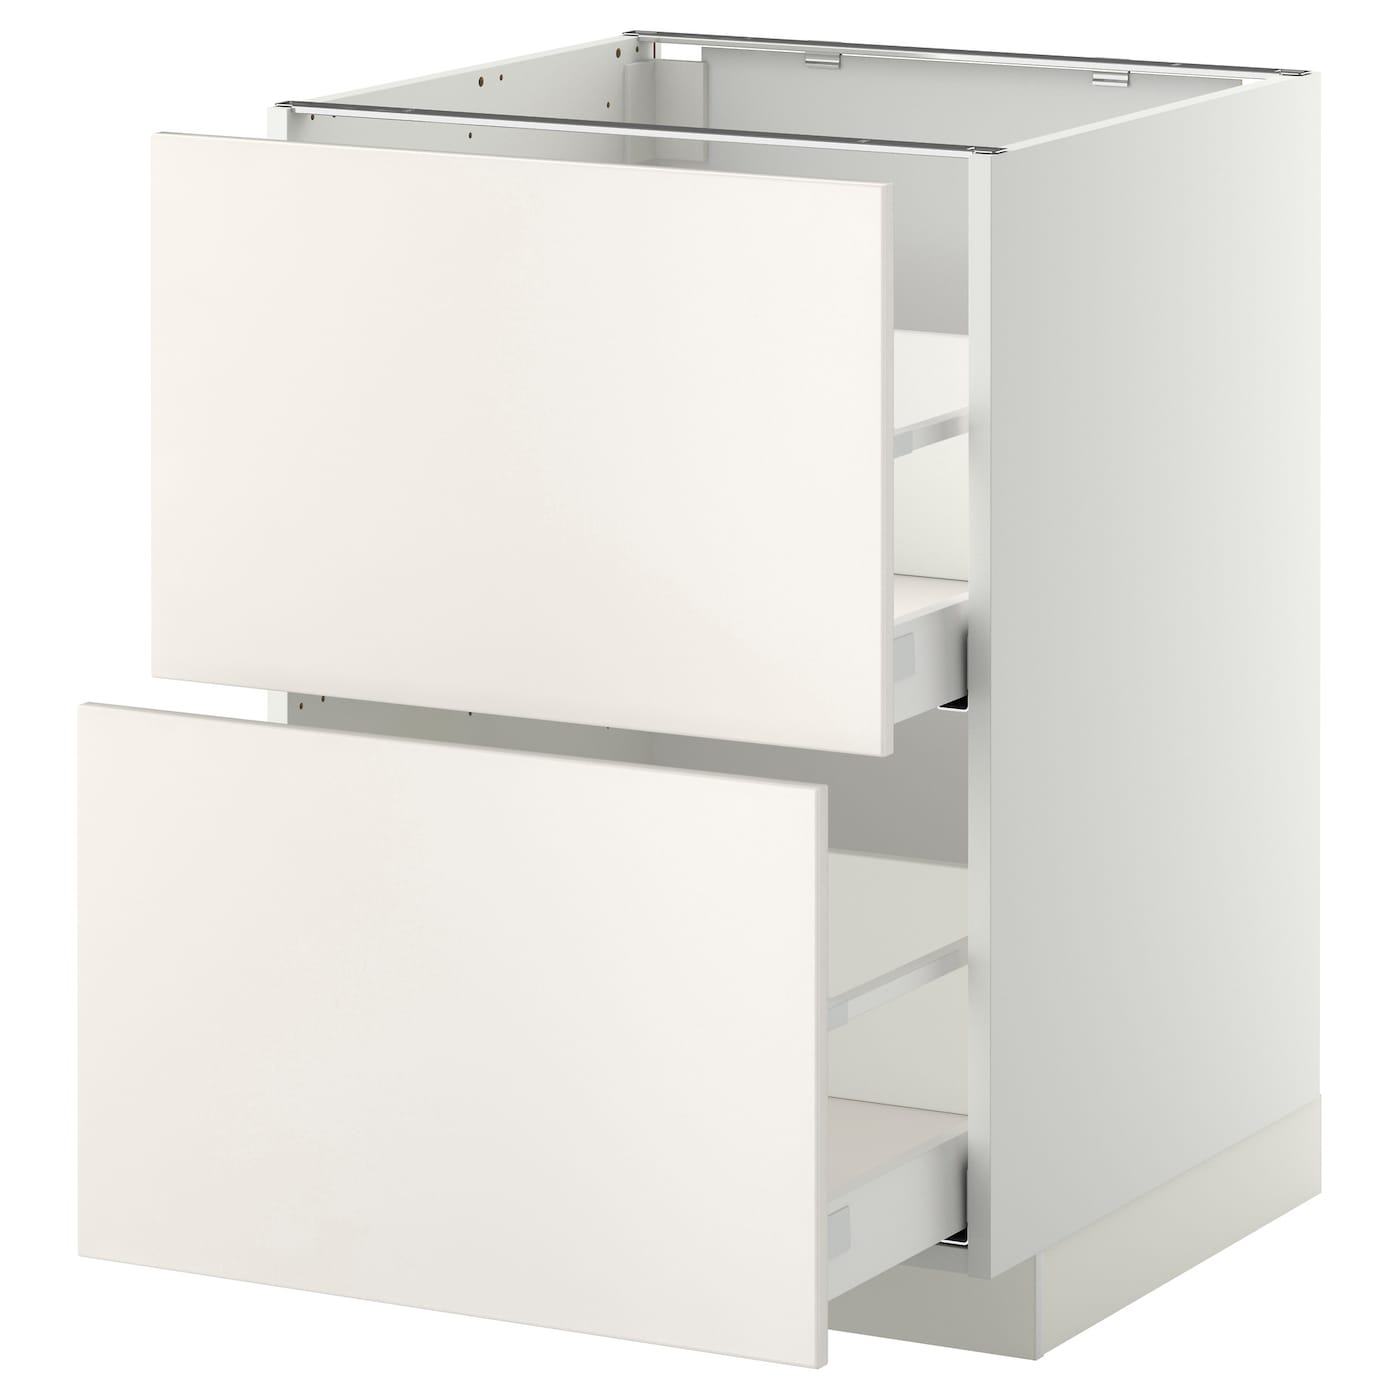 IKEA METOD/MAXIMERA base cb 2 fronts/2 high drawers Smooth-running drawers with stop.